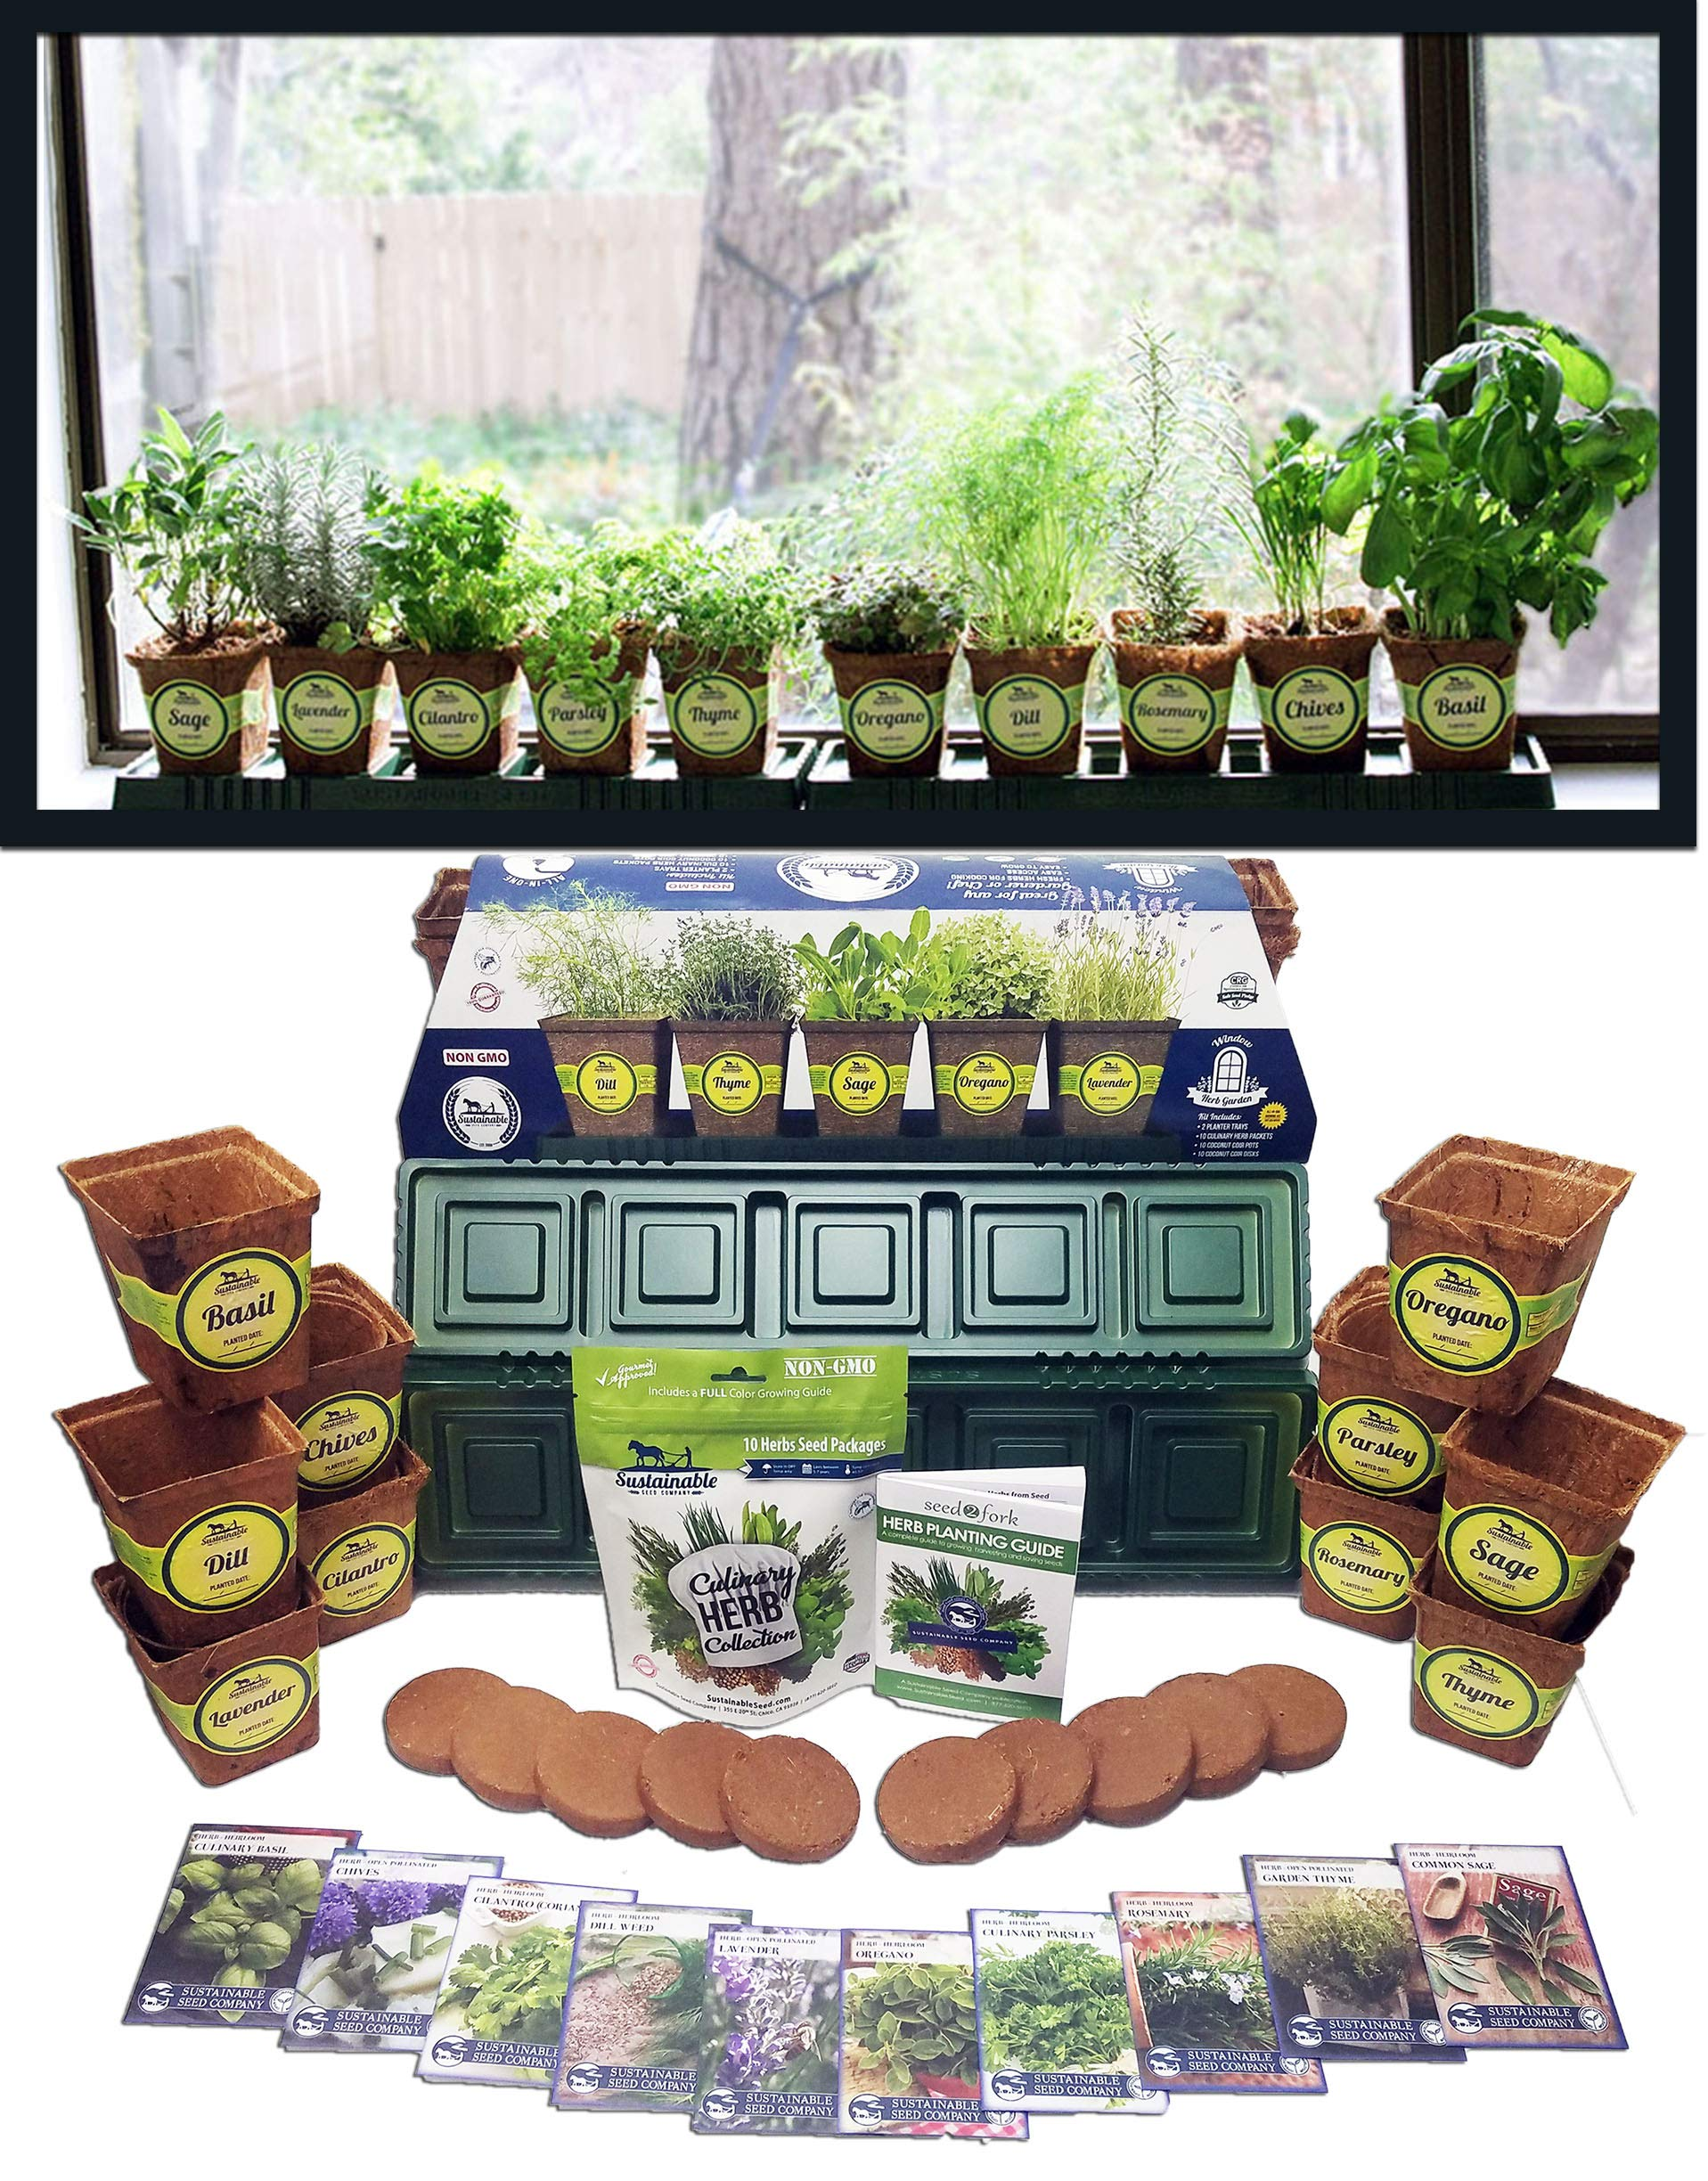 Windowsill Herb Garden Kit, Herb Planter Comes Complete with a 10 Variety Non GMO Heirloom Herb Seed Collection & Herb Pots. by Sustainable Seed Company